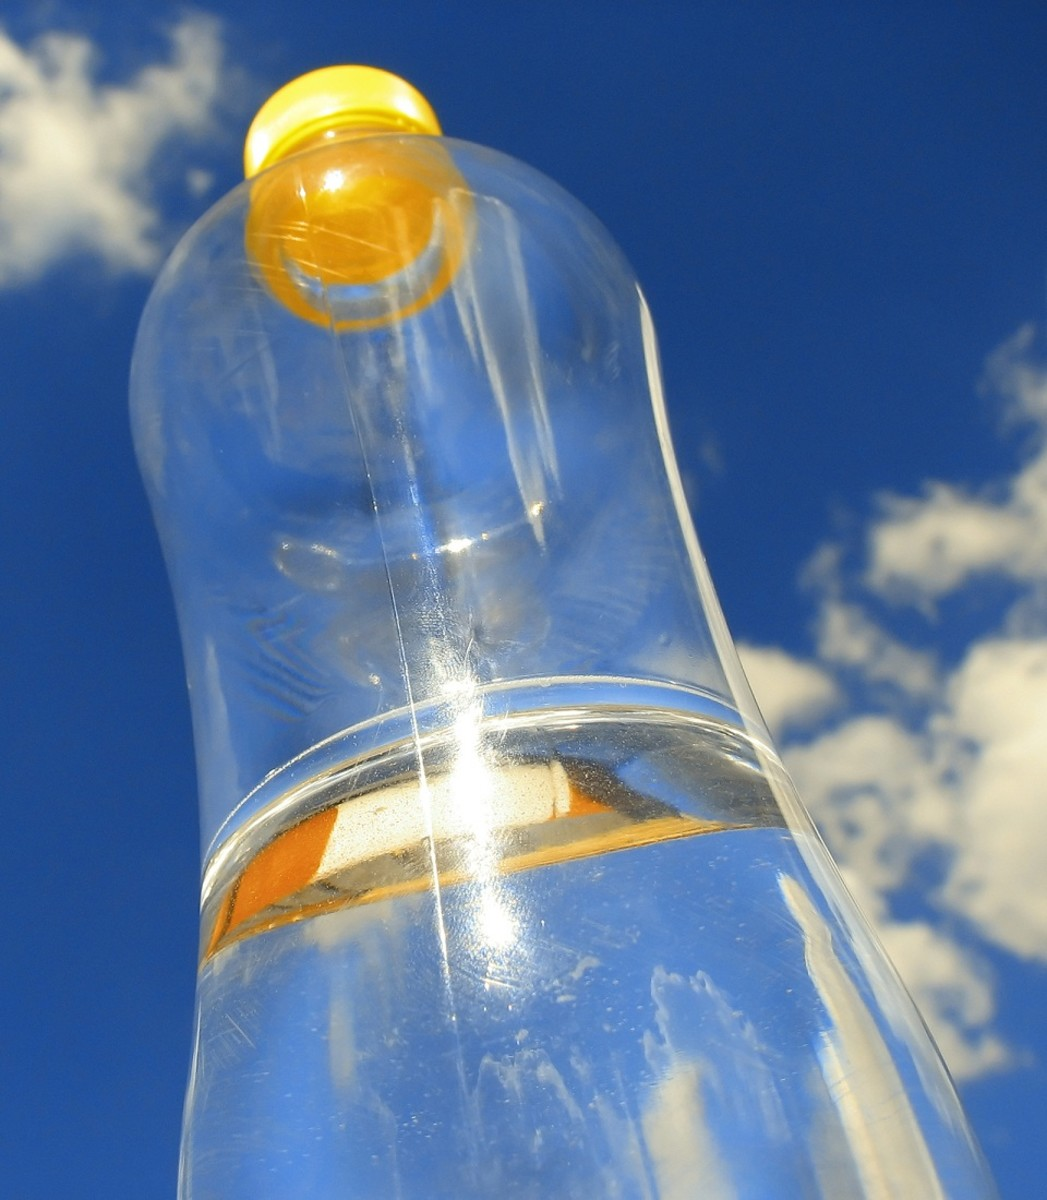 The UV-A radiation from the sun can kill bacteria and make water safe to drink.